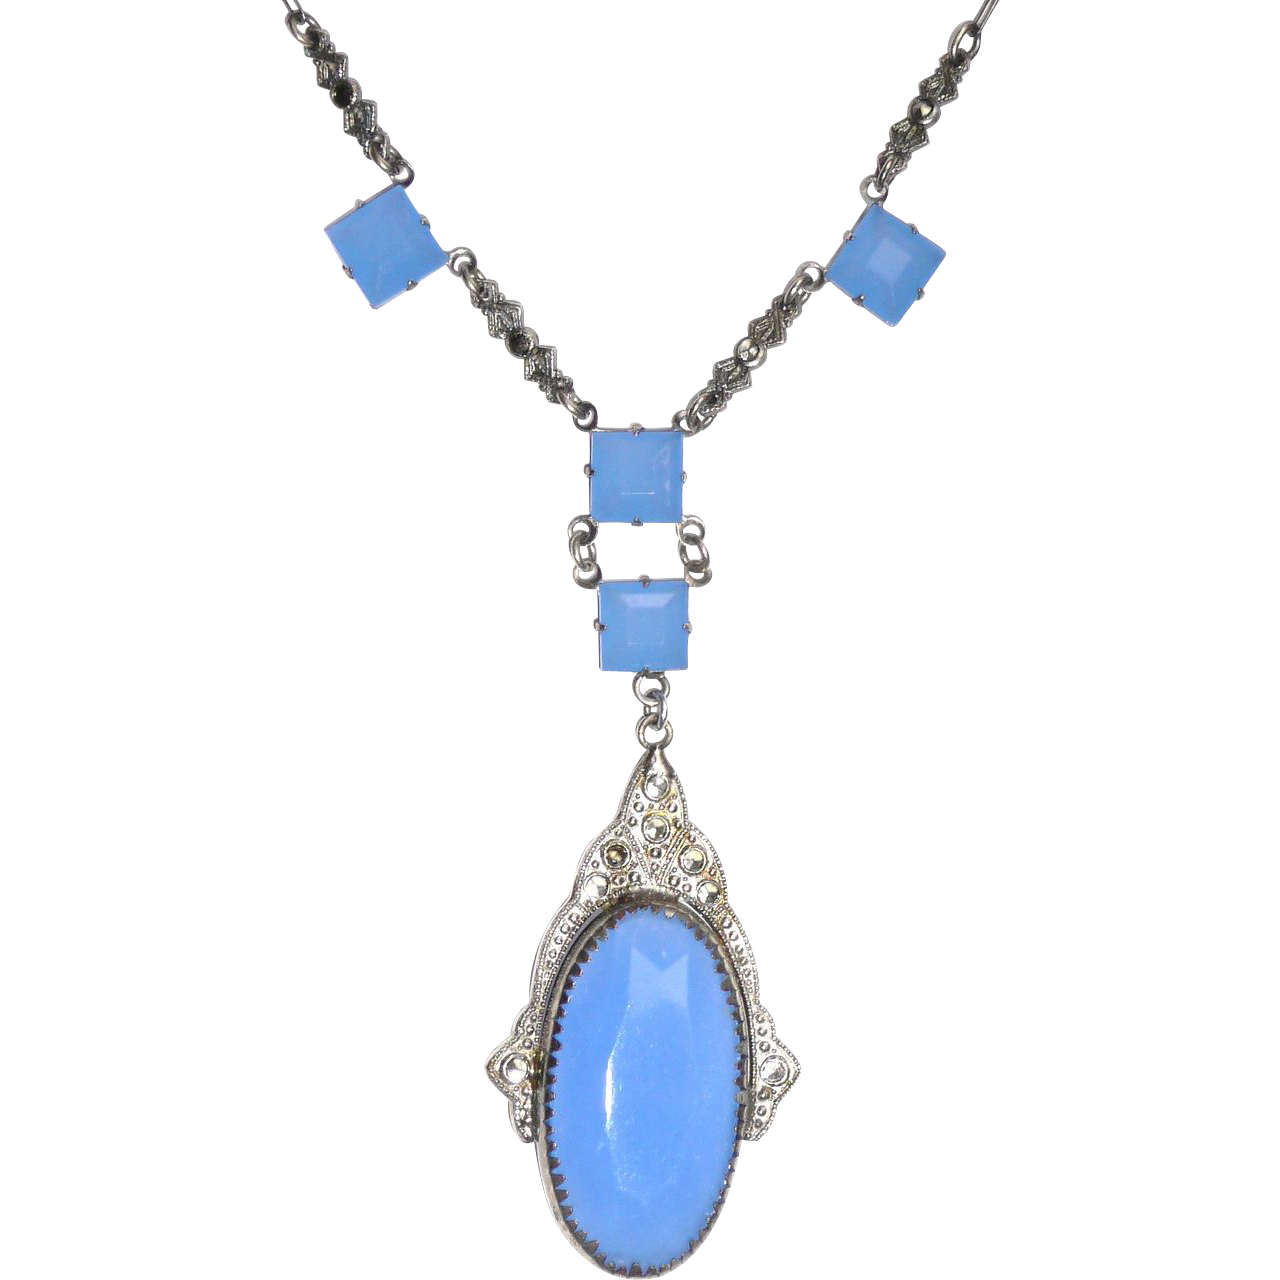 Art Deco Blue Glass Necklace with Marcasites